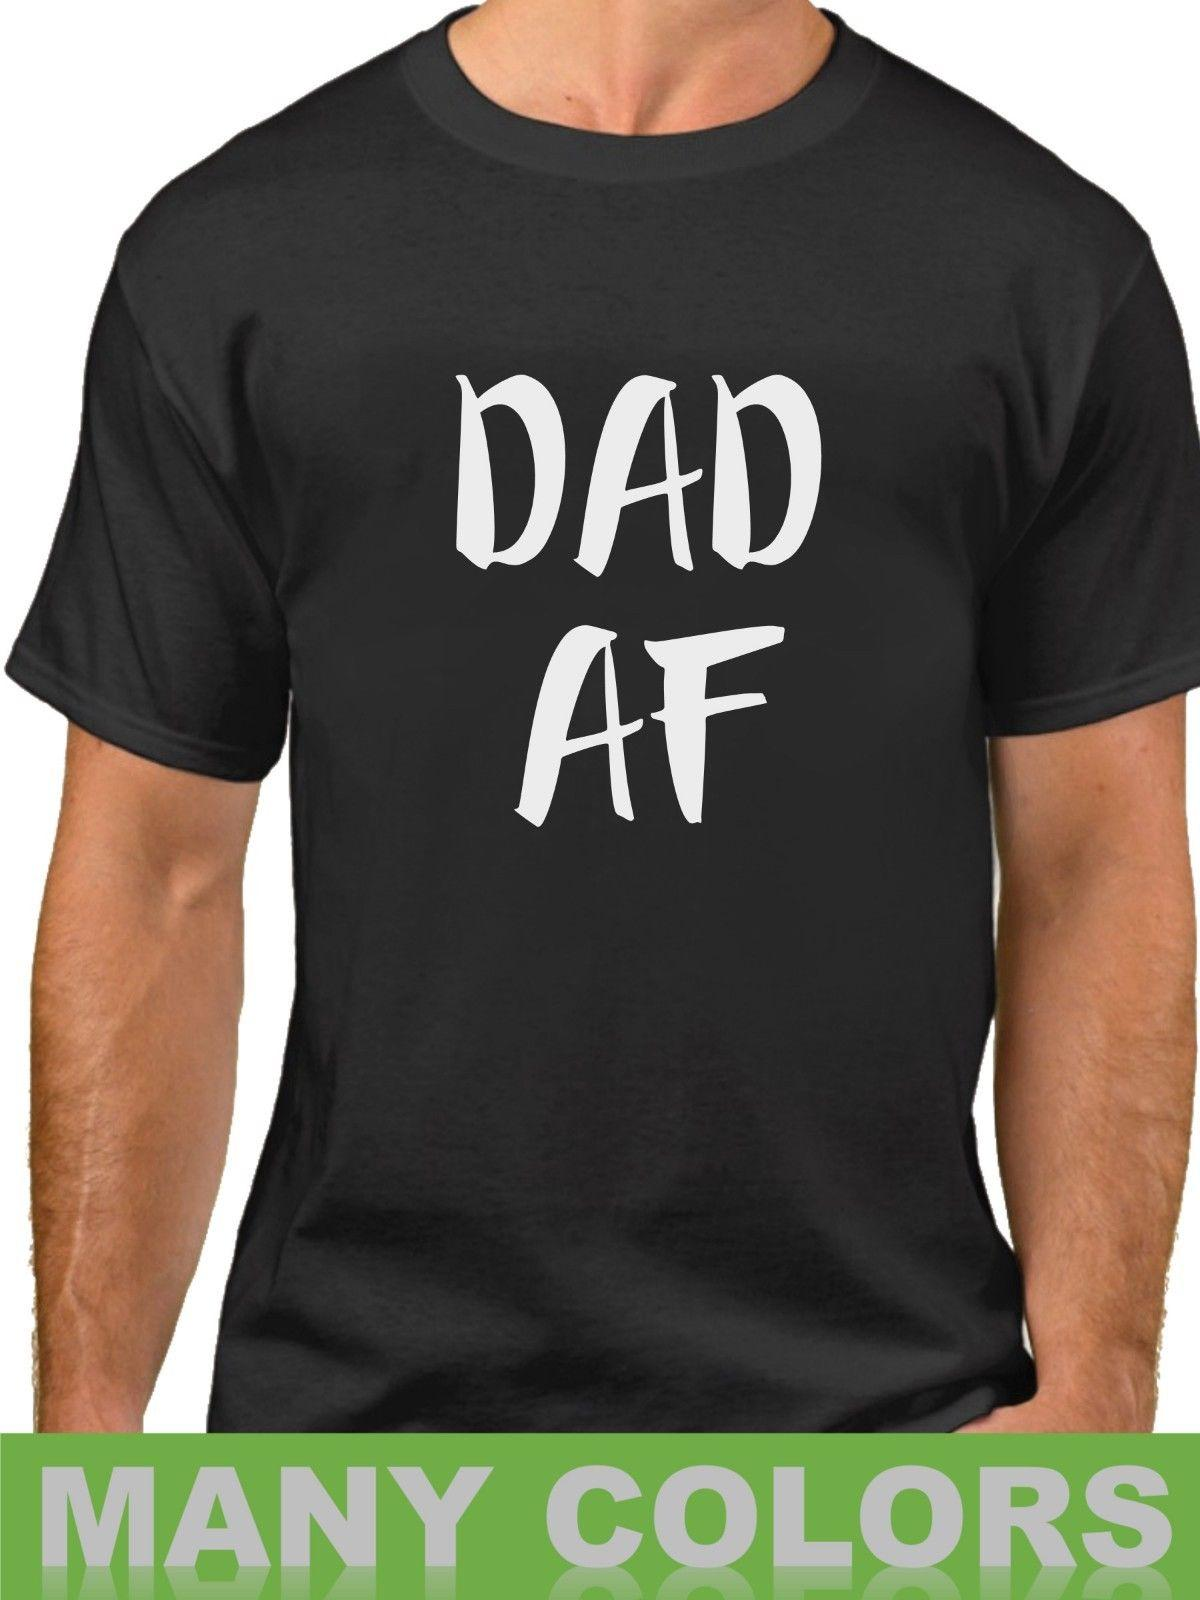 8cb1c014 Details Zu Dad AF Shirt New Dad To Be T Shirt Daddy Birthday Tee Papa Bear  Christmas GiftFunny Unisex Tee On T Shirt Tourist Shirts From Tshirt_press,  ...